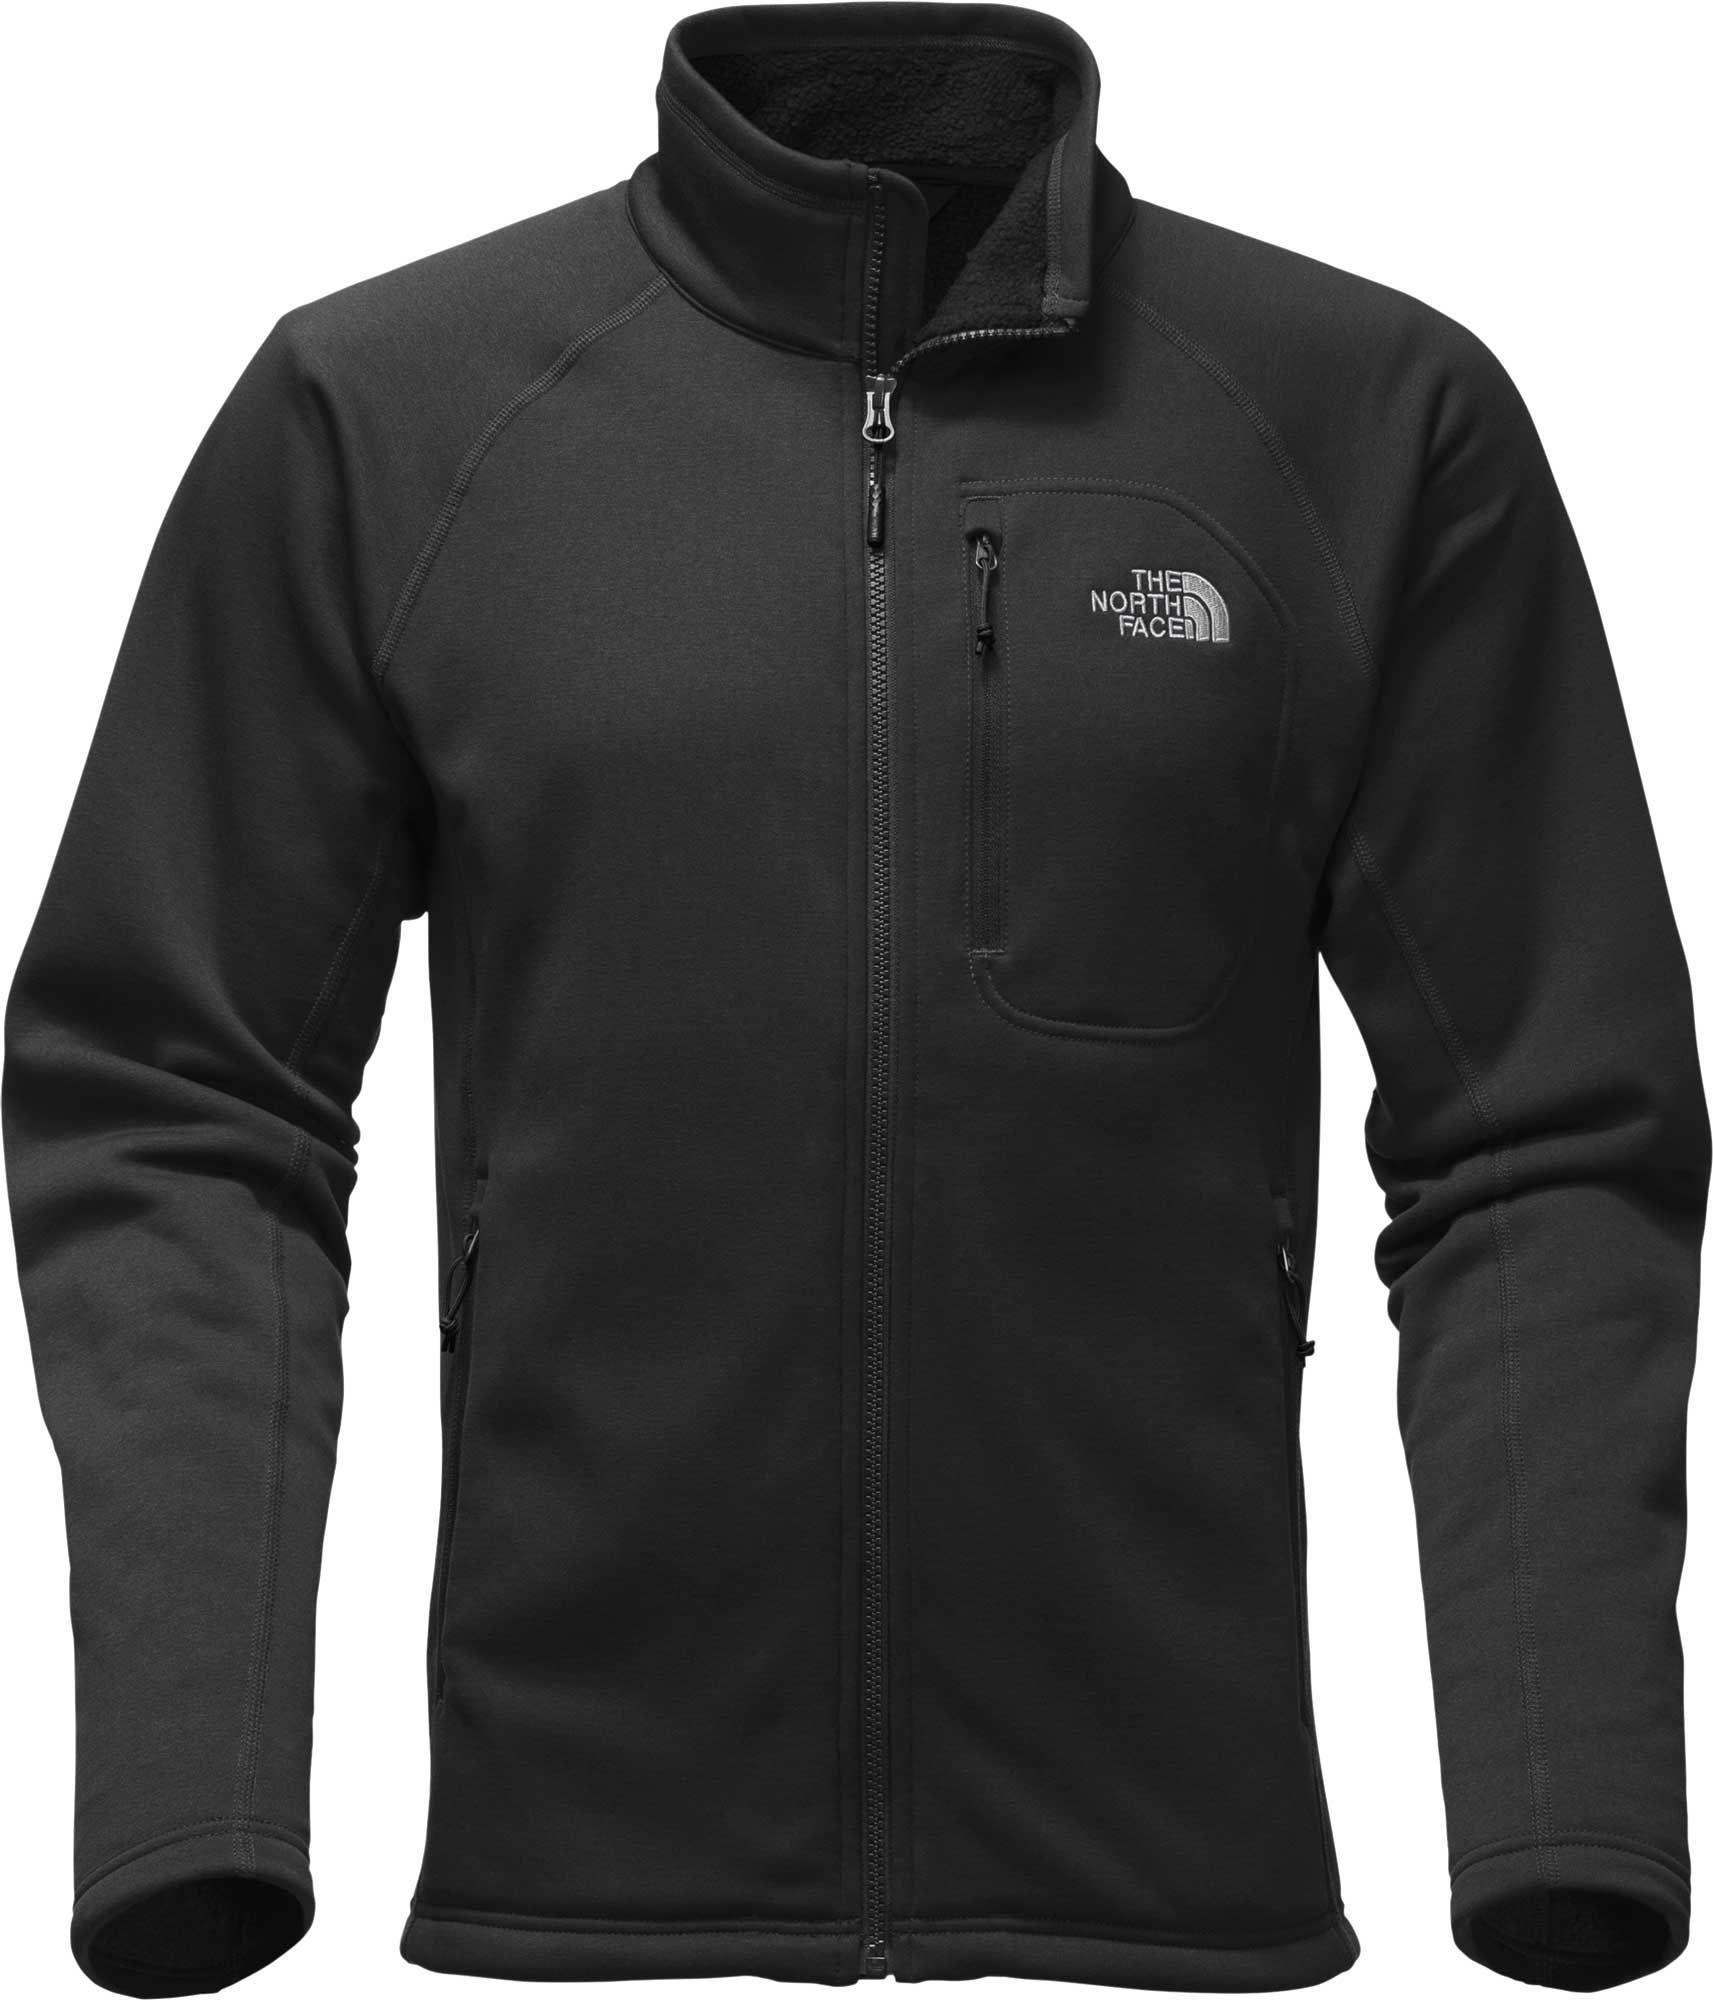 2b5ab3b7022b8 The North Face Men's Timber Full Zip Fleece Jacket